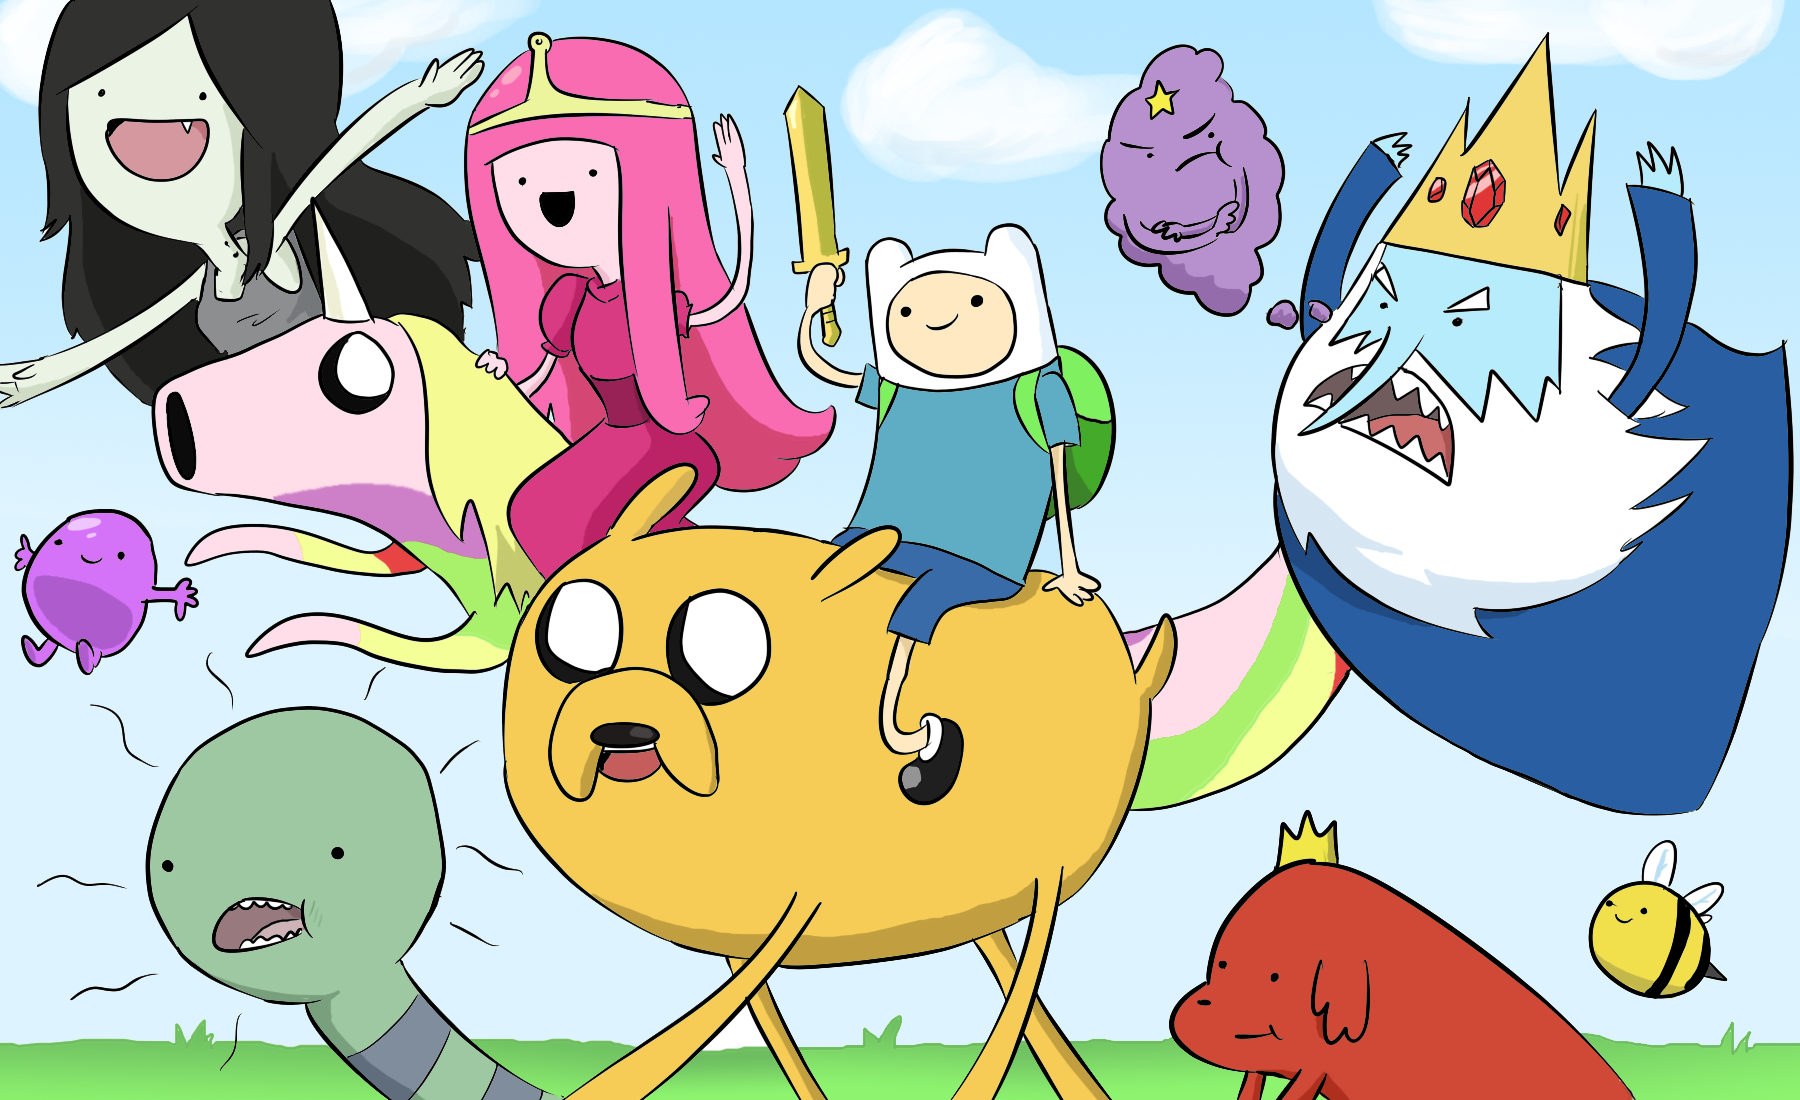 2468603-38304-adventure-time-adventure-time-characters.png